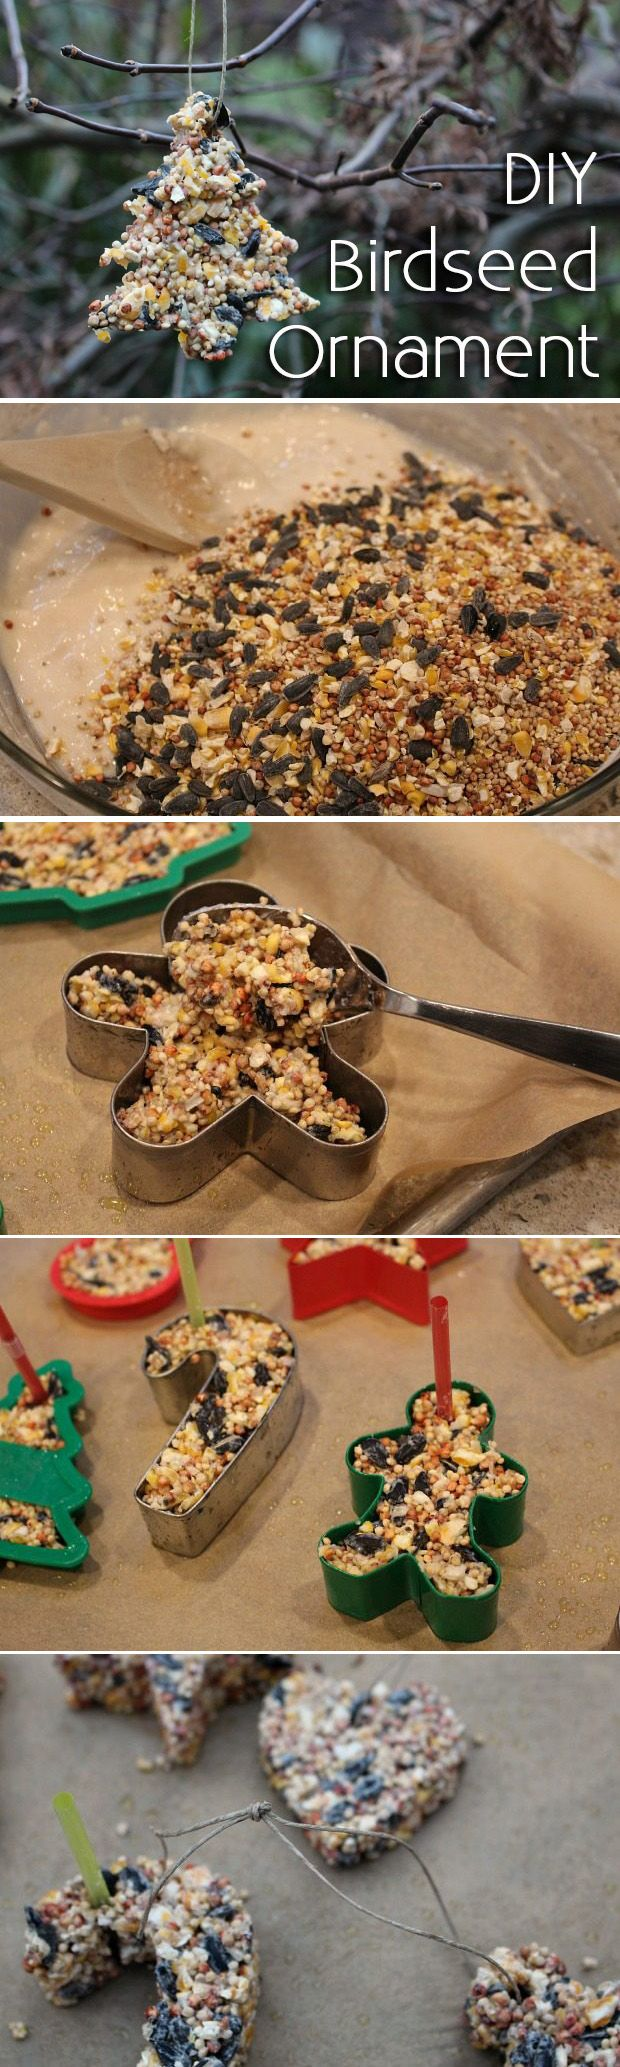 A festive craft the kids will enjoy making and the the birds will love! A homemade